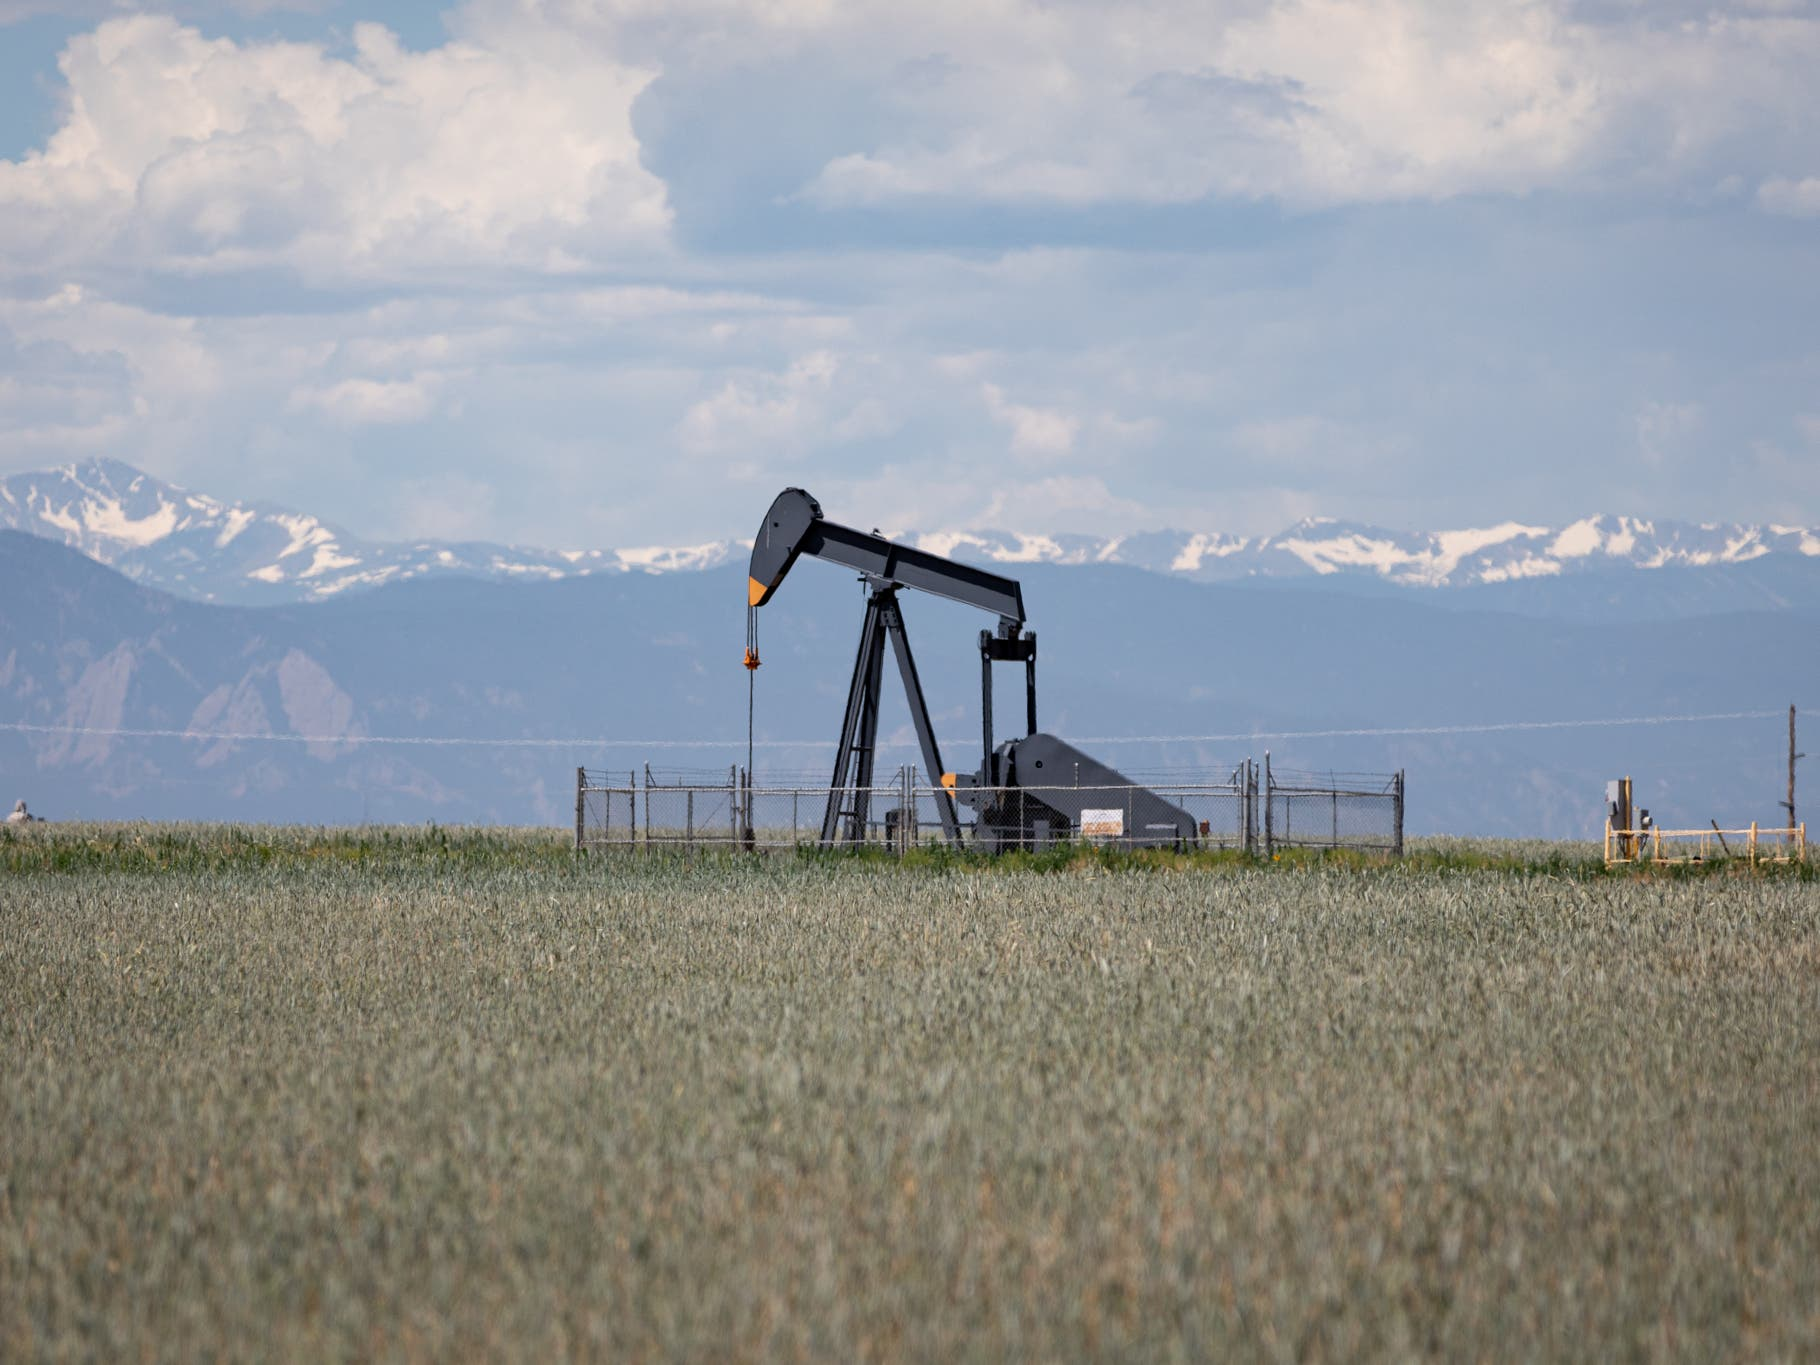 New Oil And Gas Rules Given Final Approval By Colorado Regulators